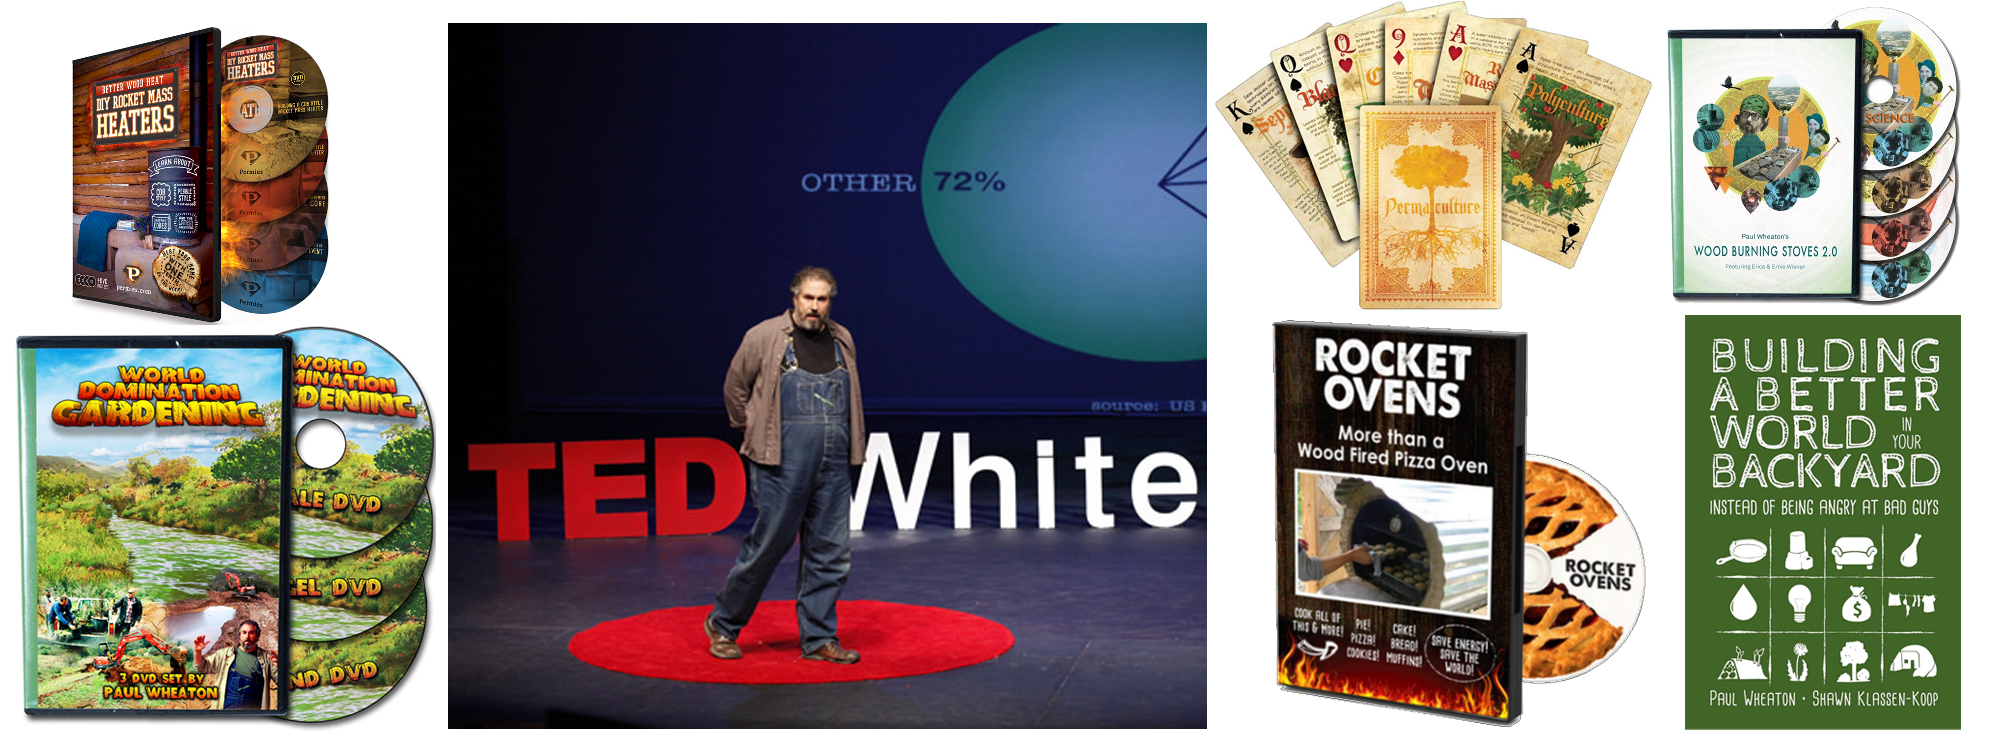 better world book, paul wheaton ted talk, rocket stove and oven DVDs, permaculture cards, World Domination Gardening